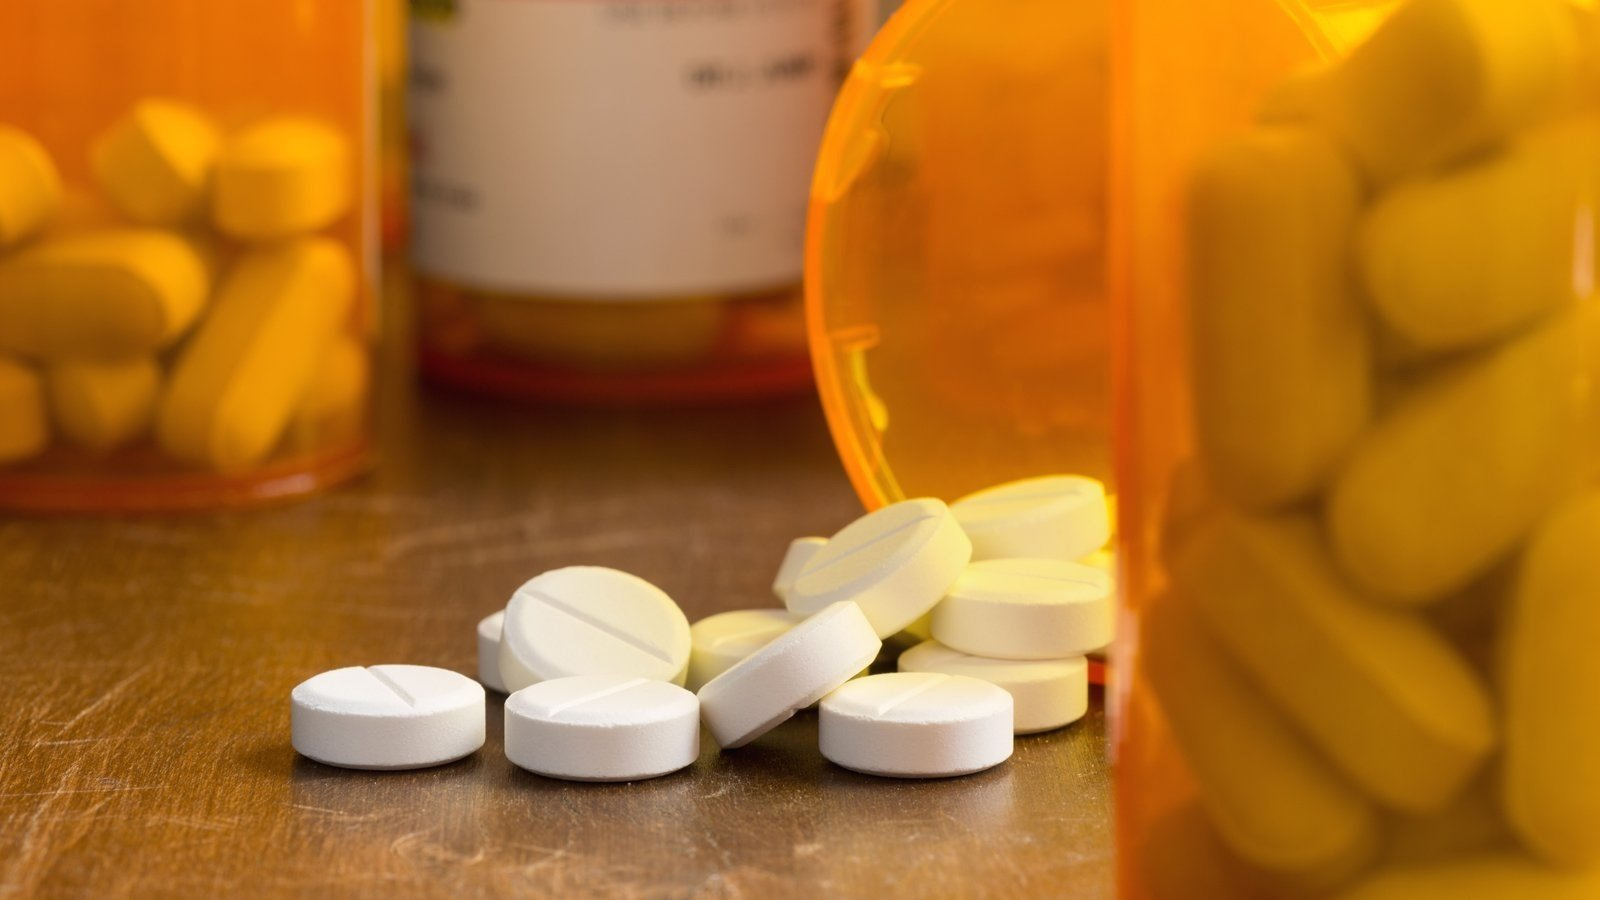 FDA Revises Labeling to Limit Pediatric Opioid Use